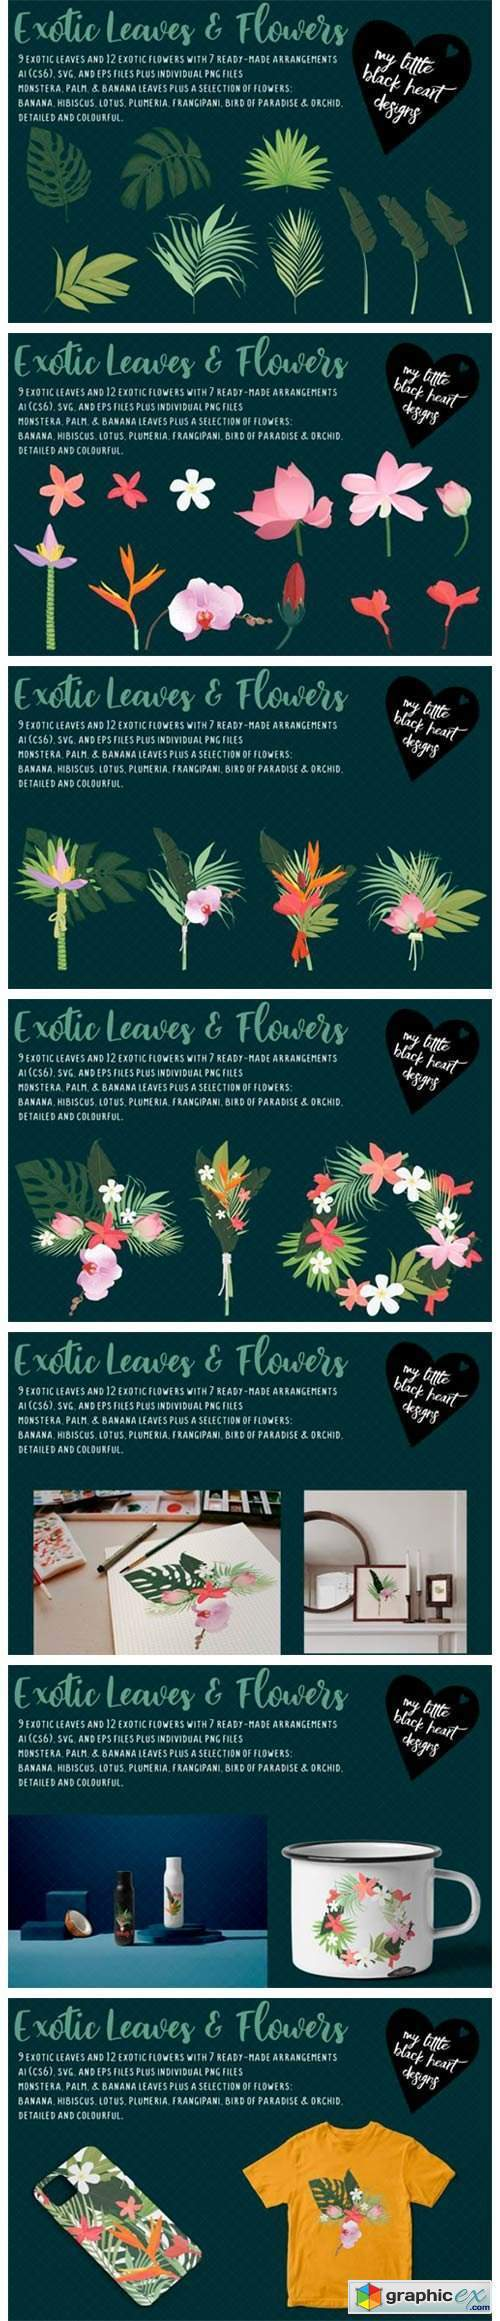 Exotic Leaves and Flowers